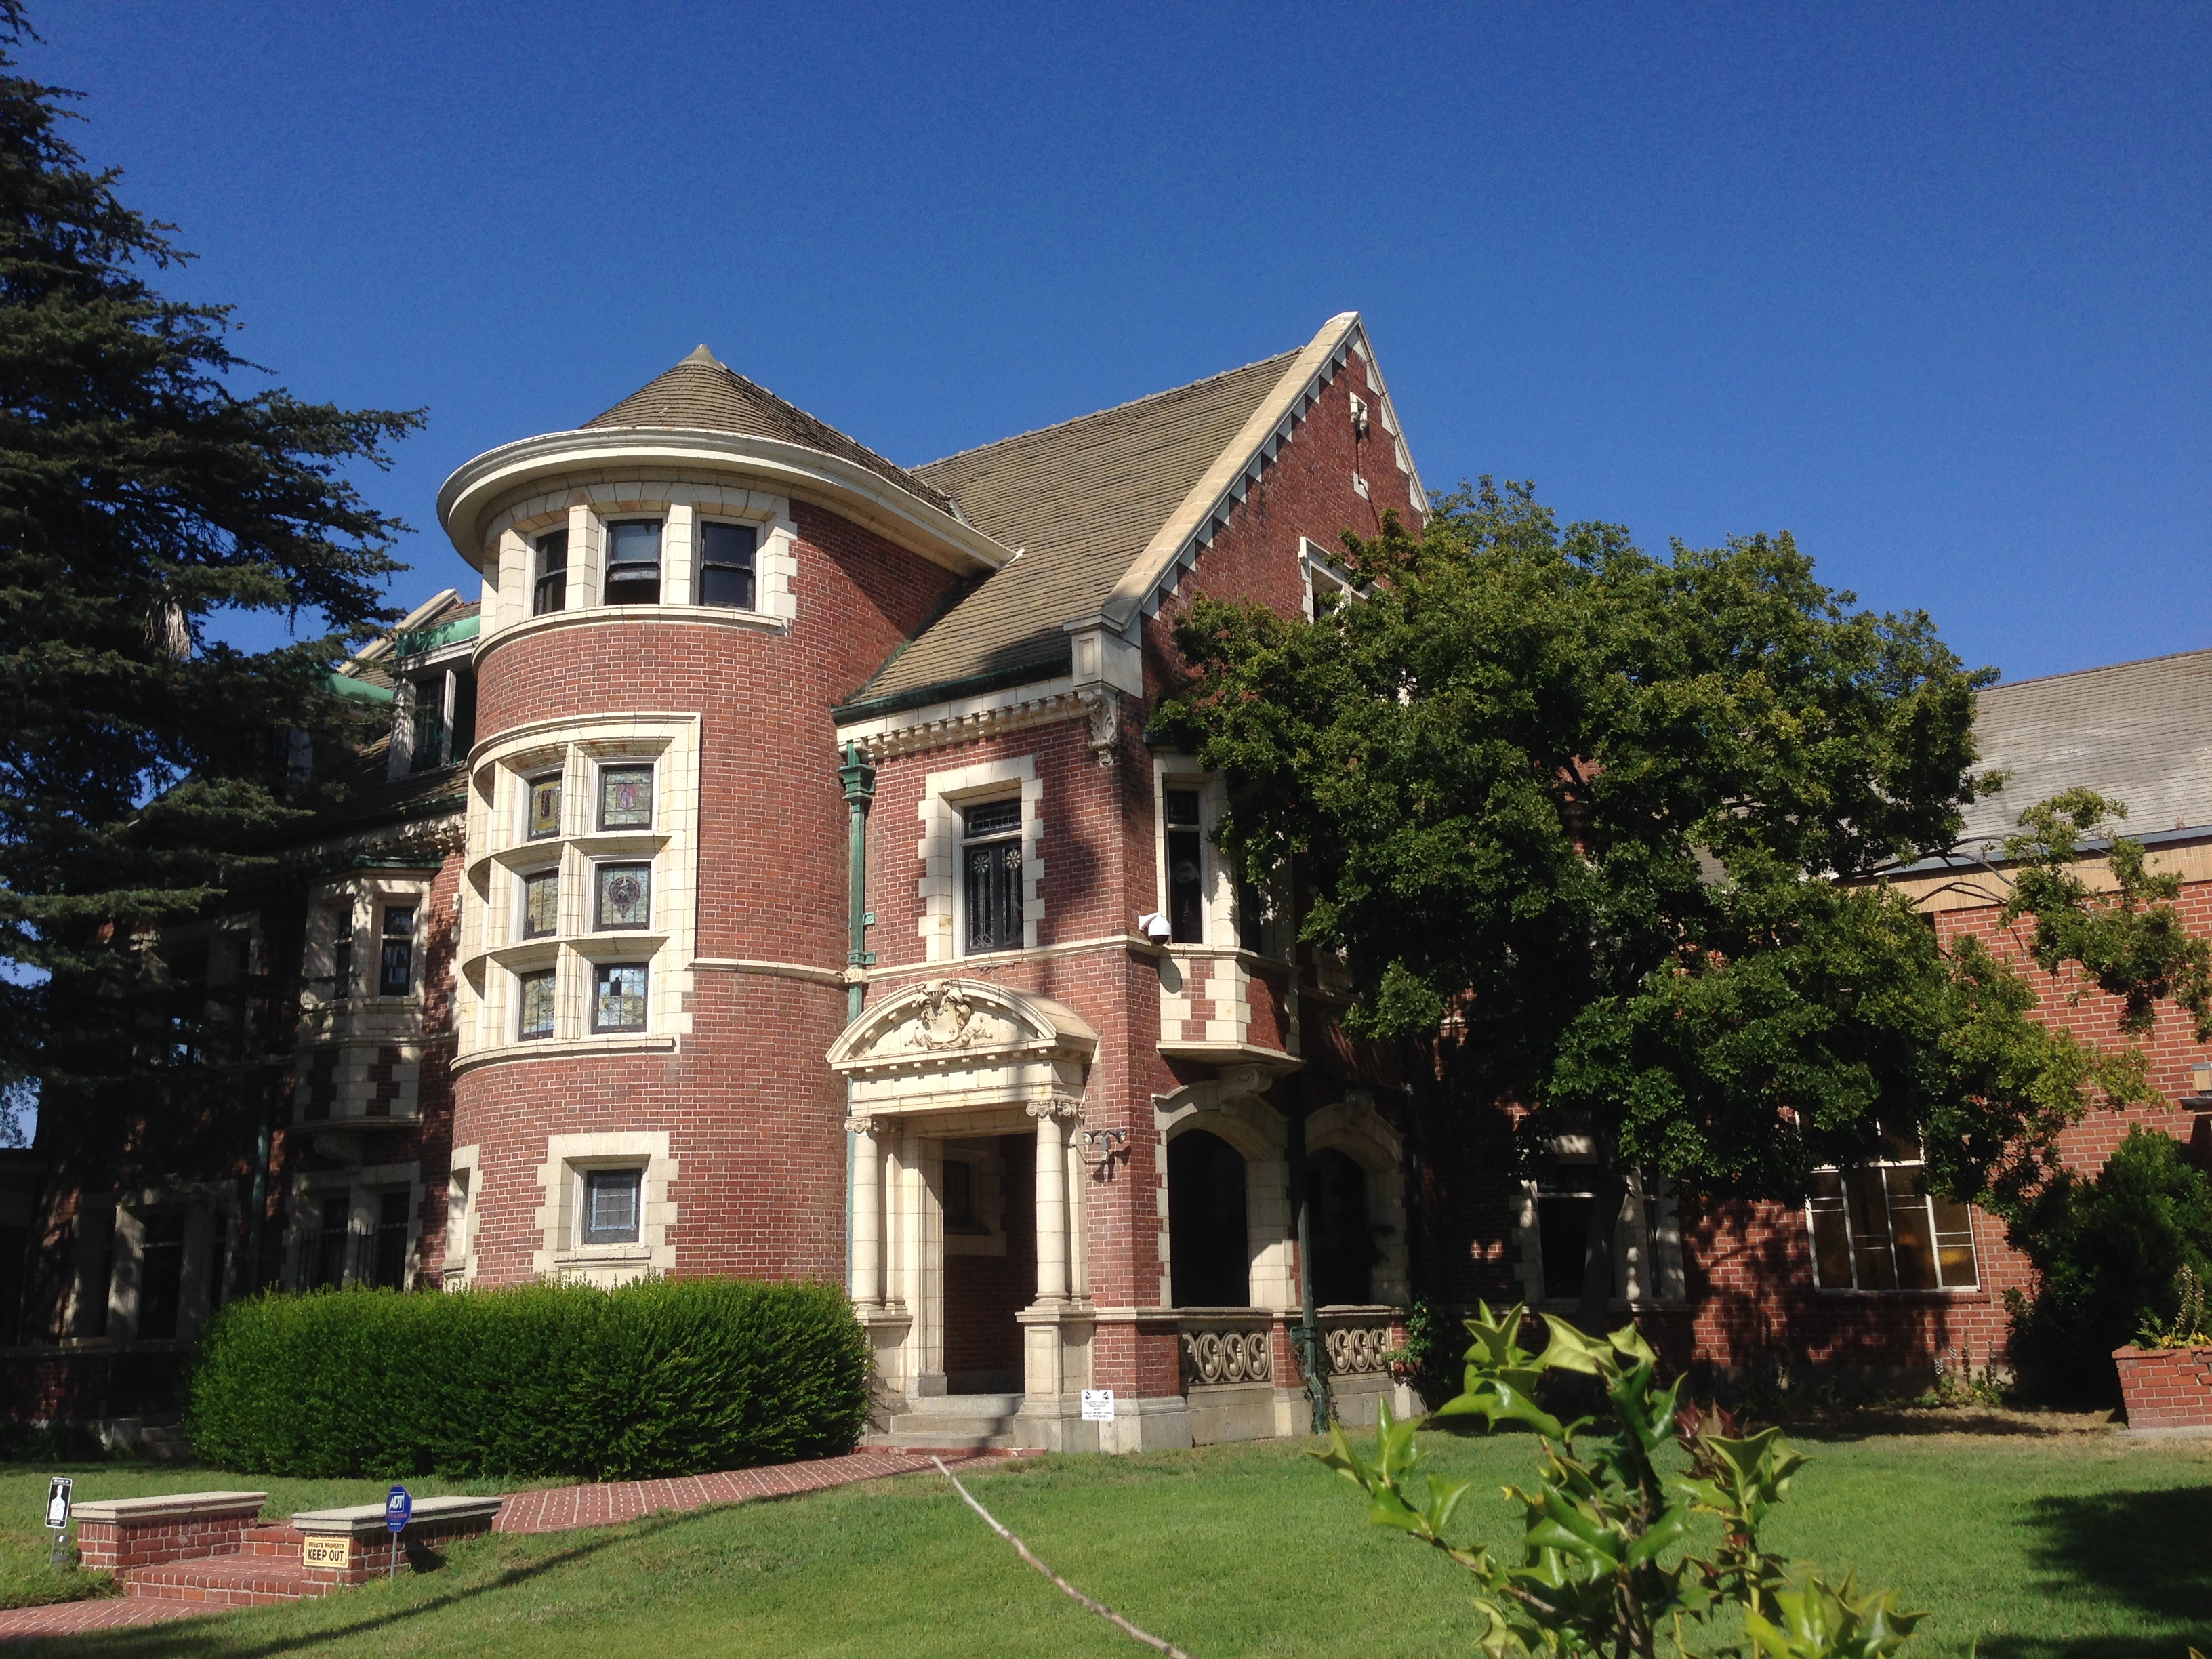 Next stop on the tour murder house killer kalyn for Murder house for sale american horror story